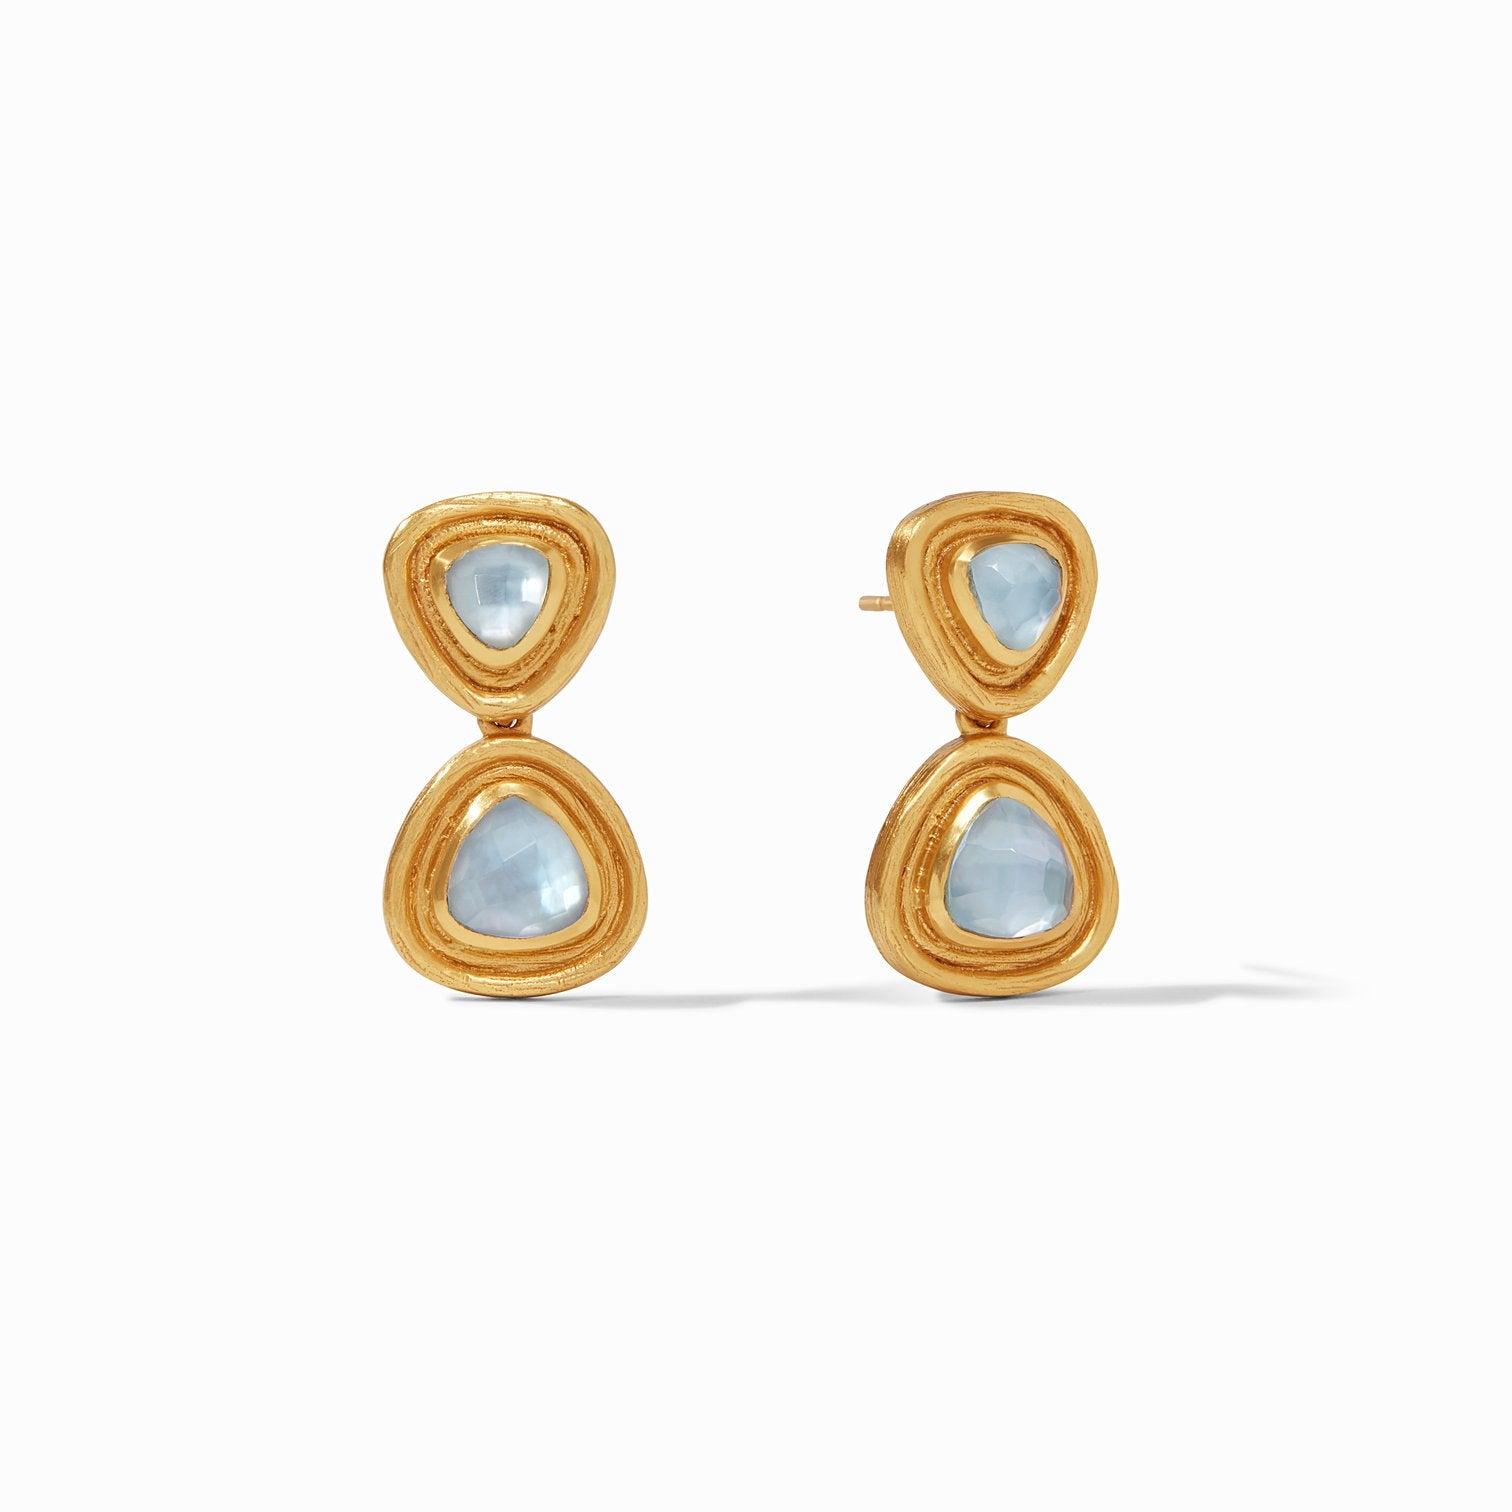 JULIE VOS - Barcelona Midi Earring - Iridescent Chalcedony Blue